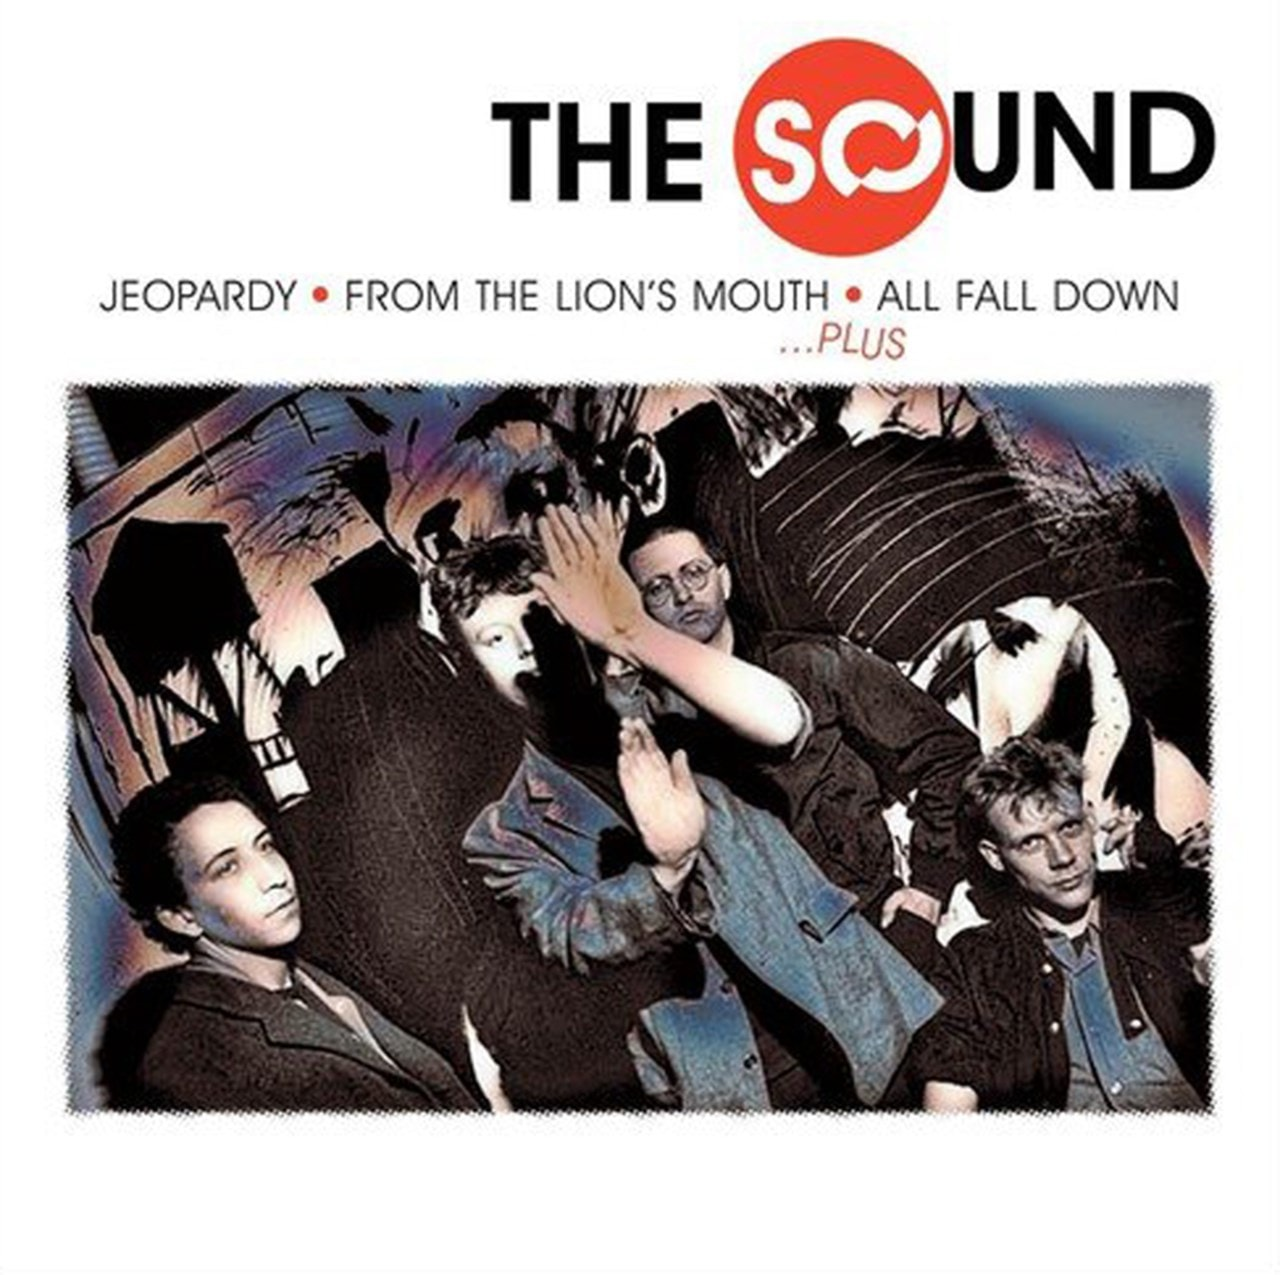 Jeopardy/From the Lion's Mouth/All Fall Down - 1